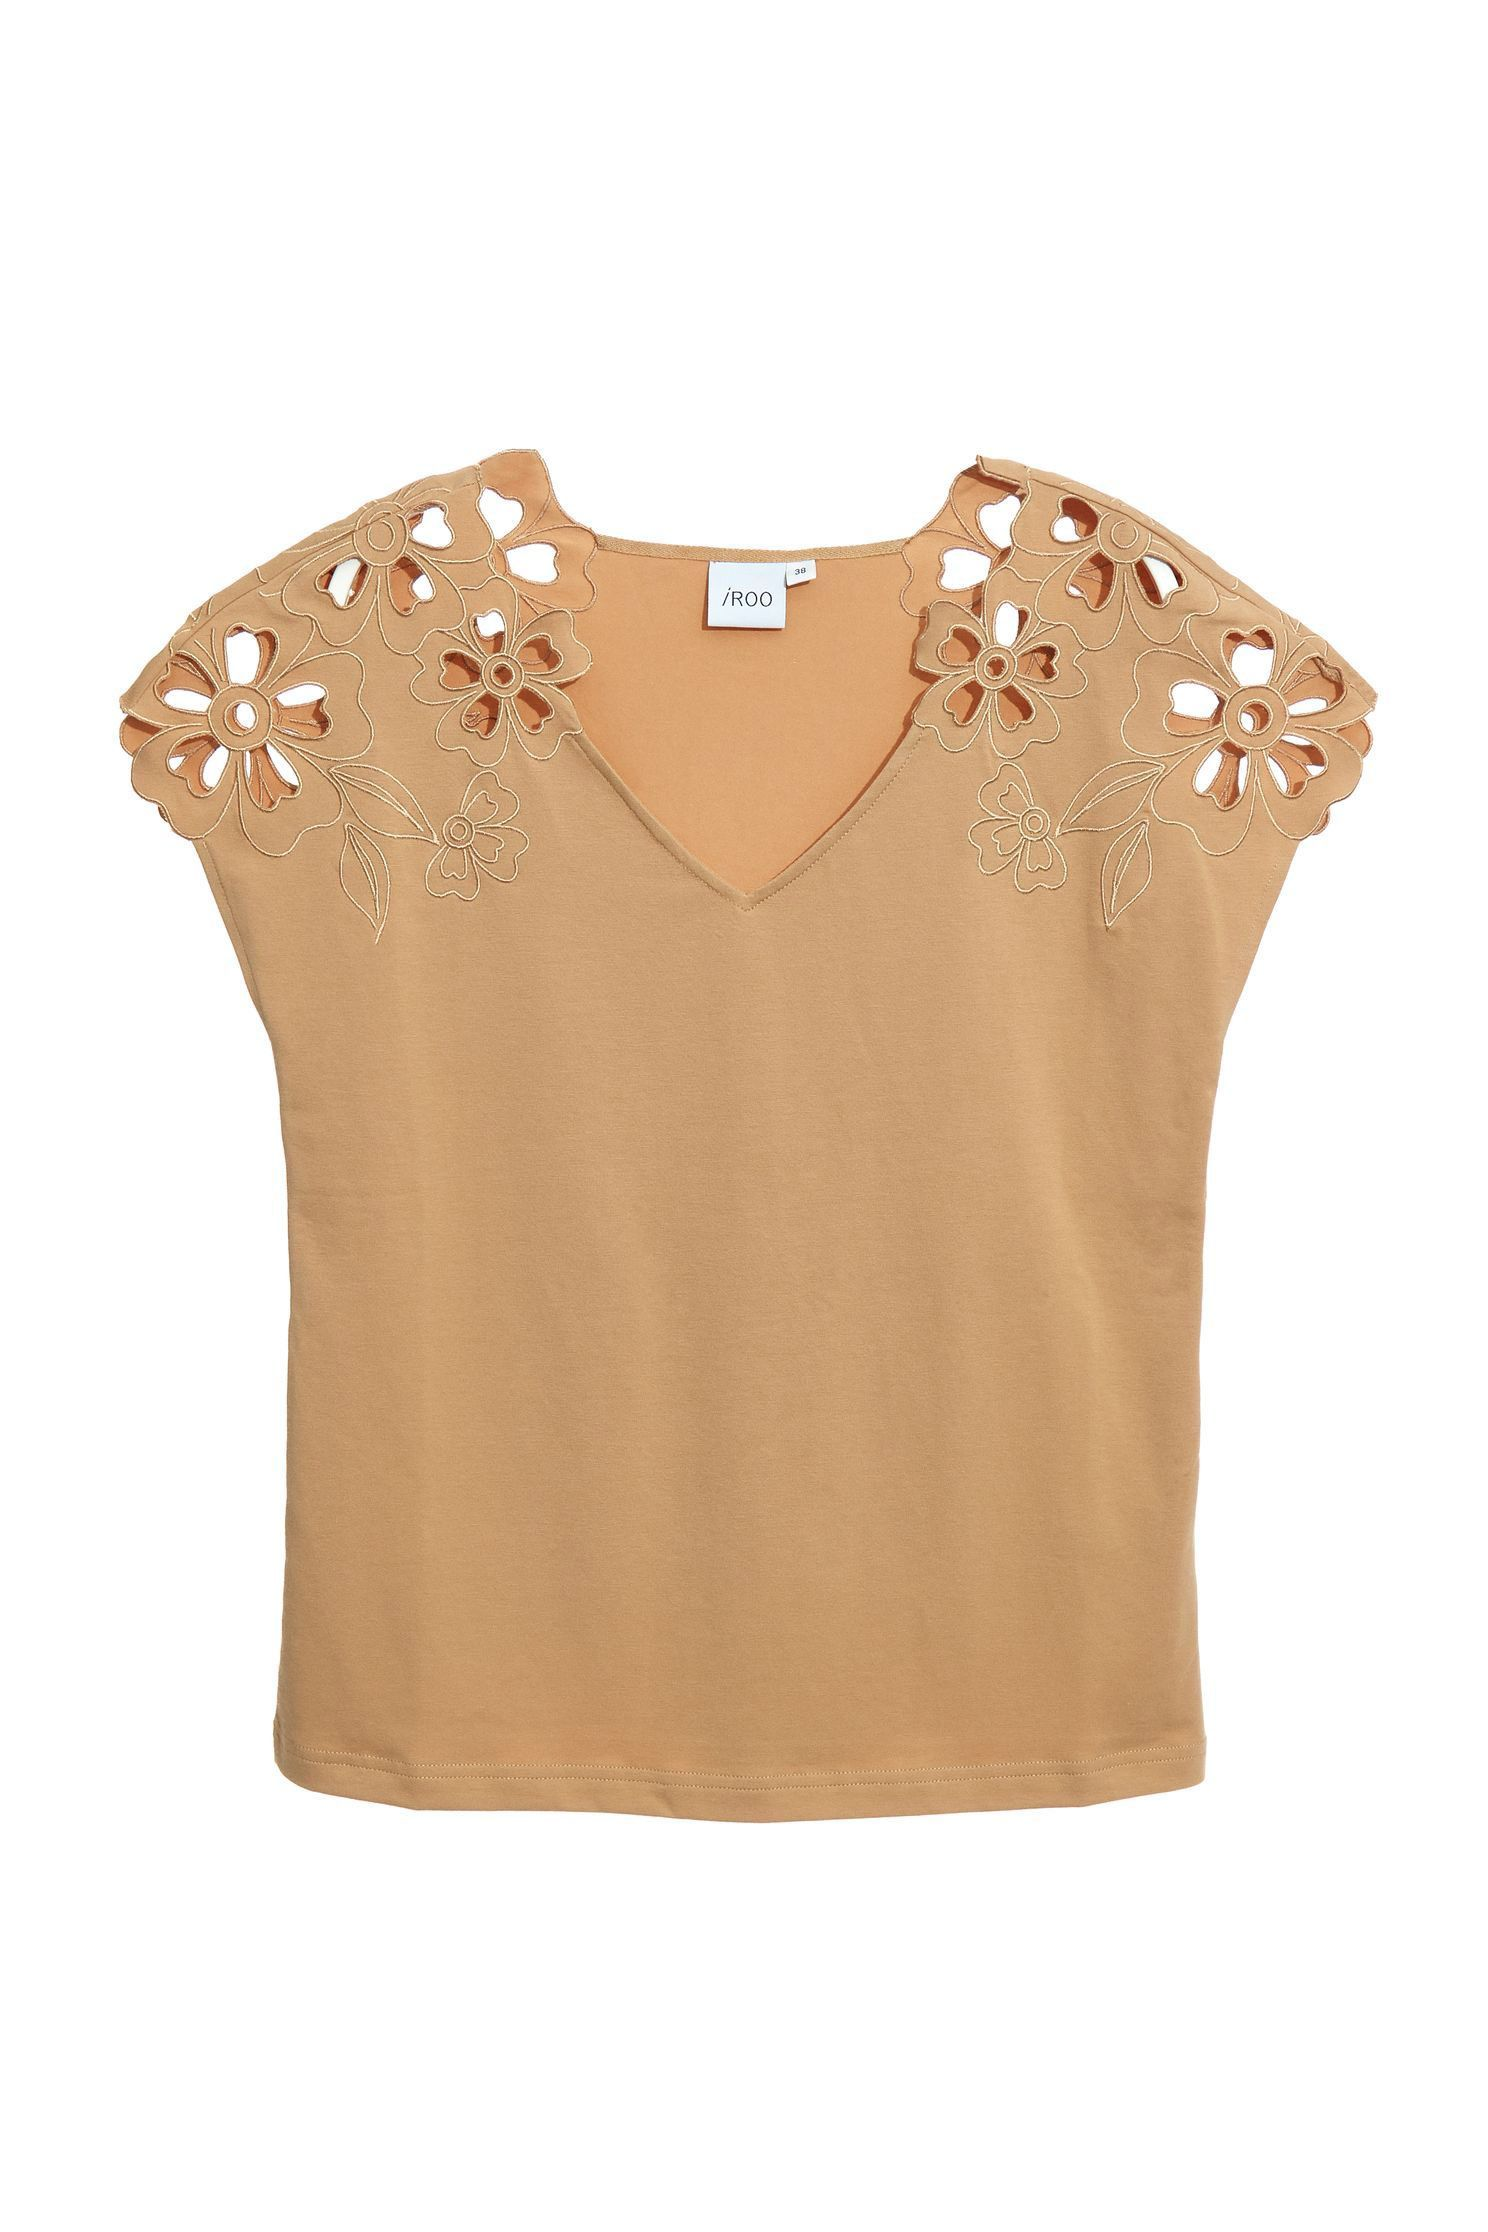 Embroidered hollow cotton top